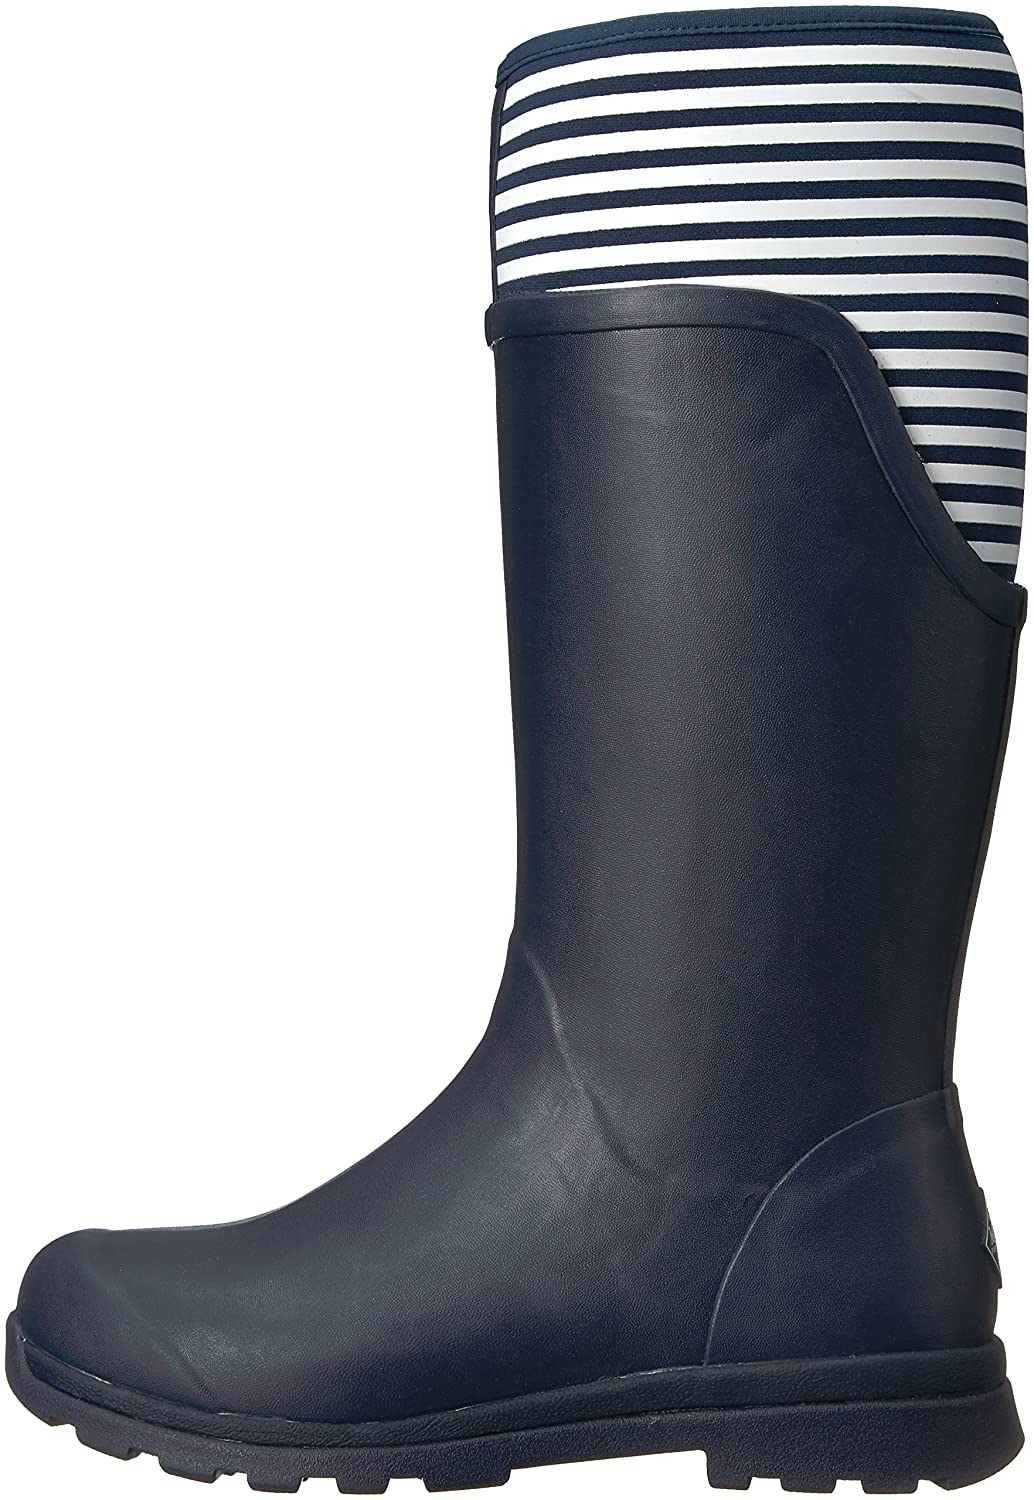 Muck Boot US|Navy Women's Cambridge Tall Snow B01N5PLWZM 10 B(M) US|Navy Boot With White Stripe d8a99d